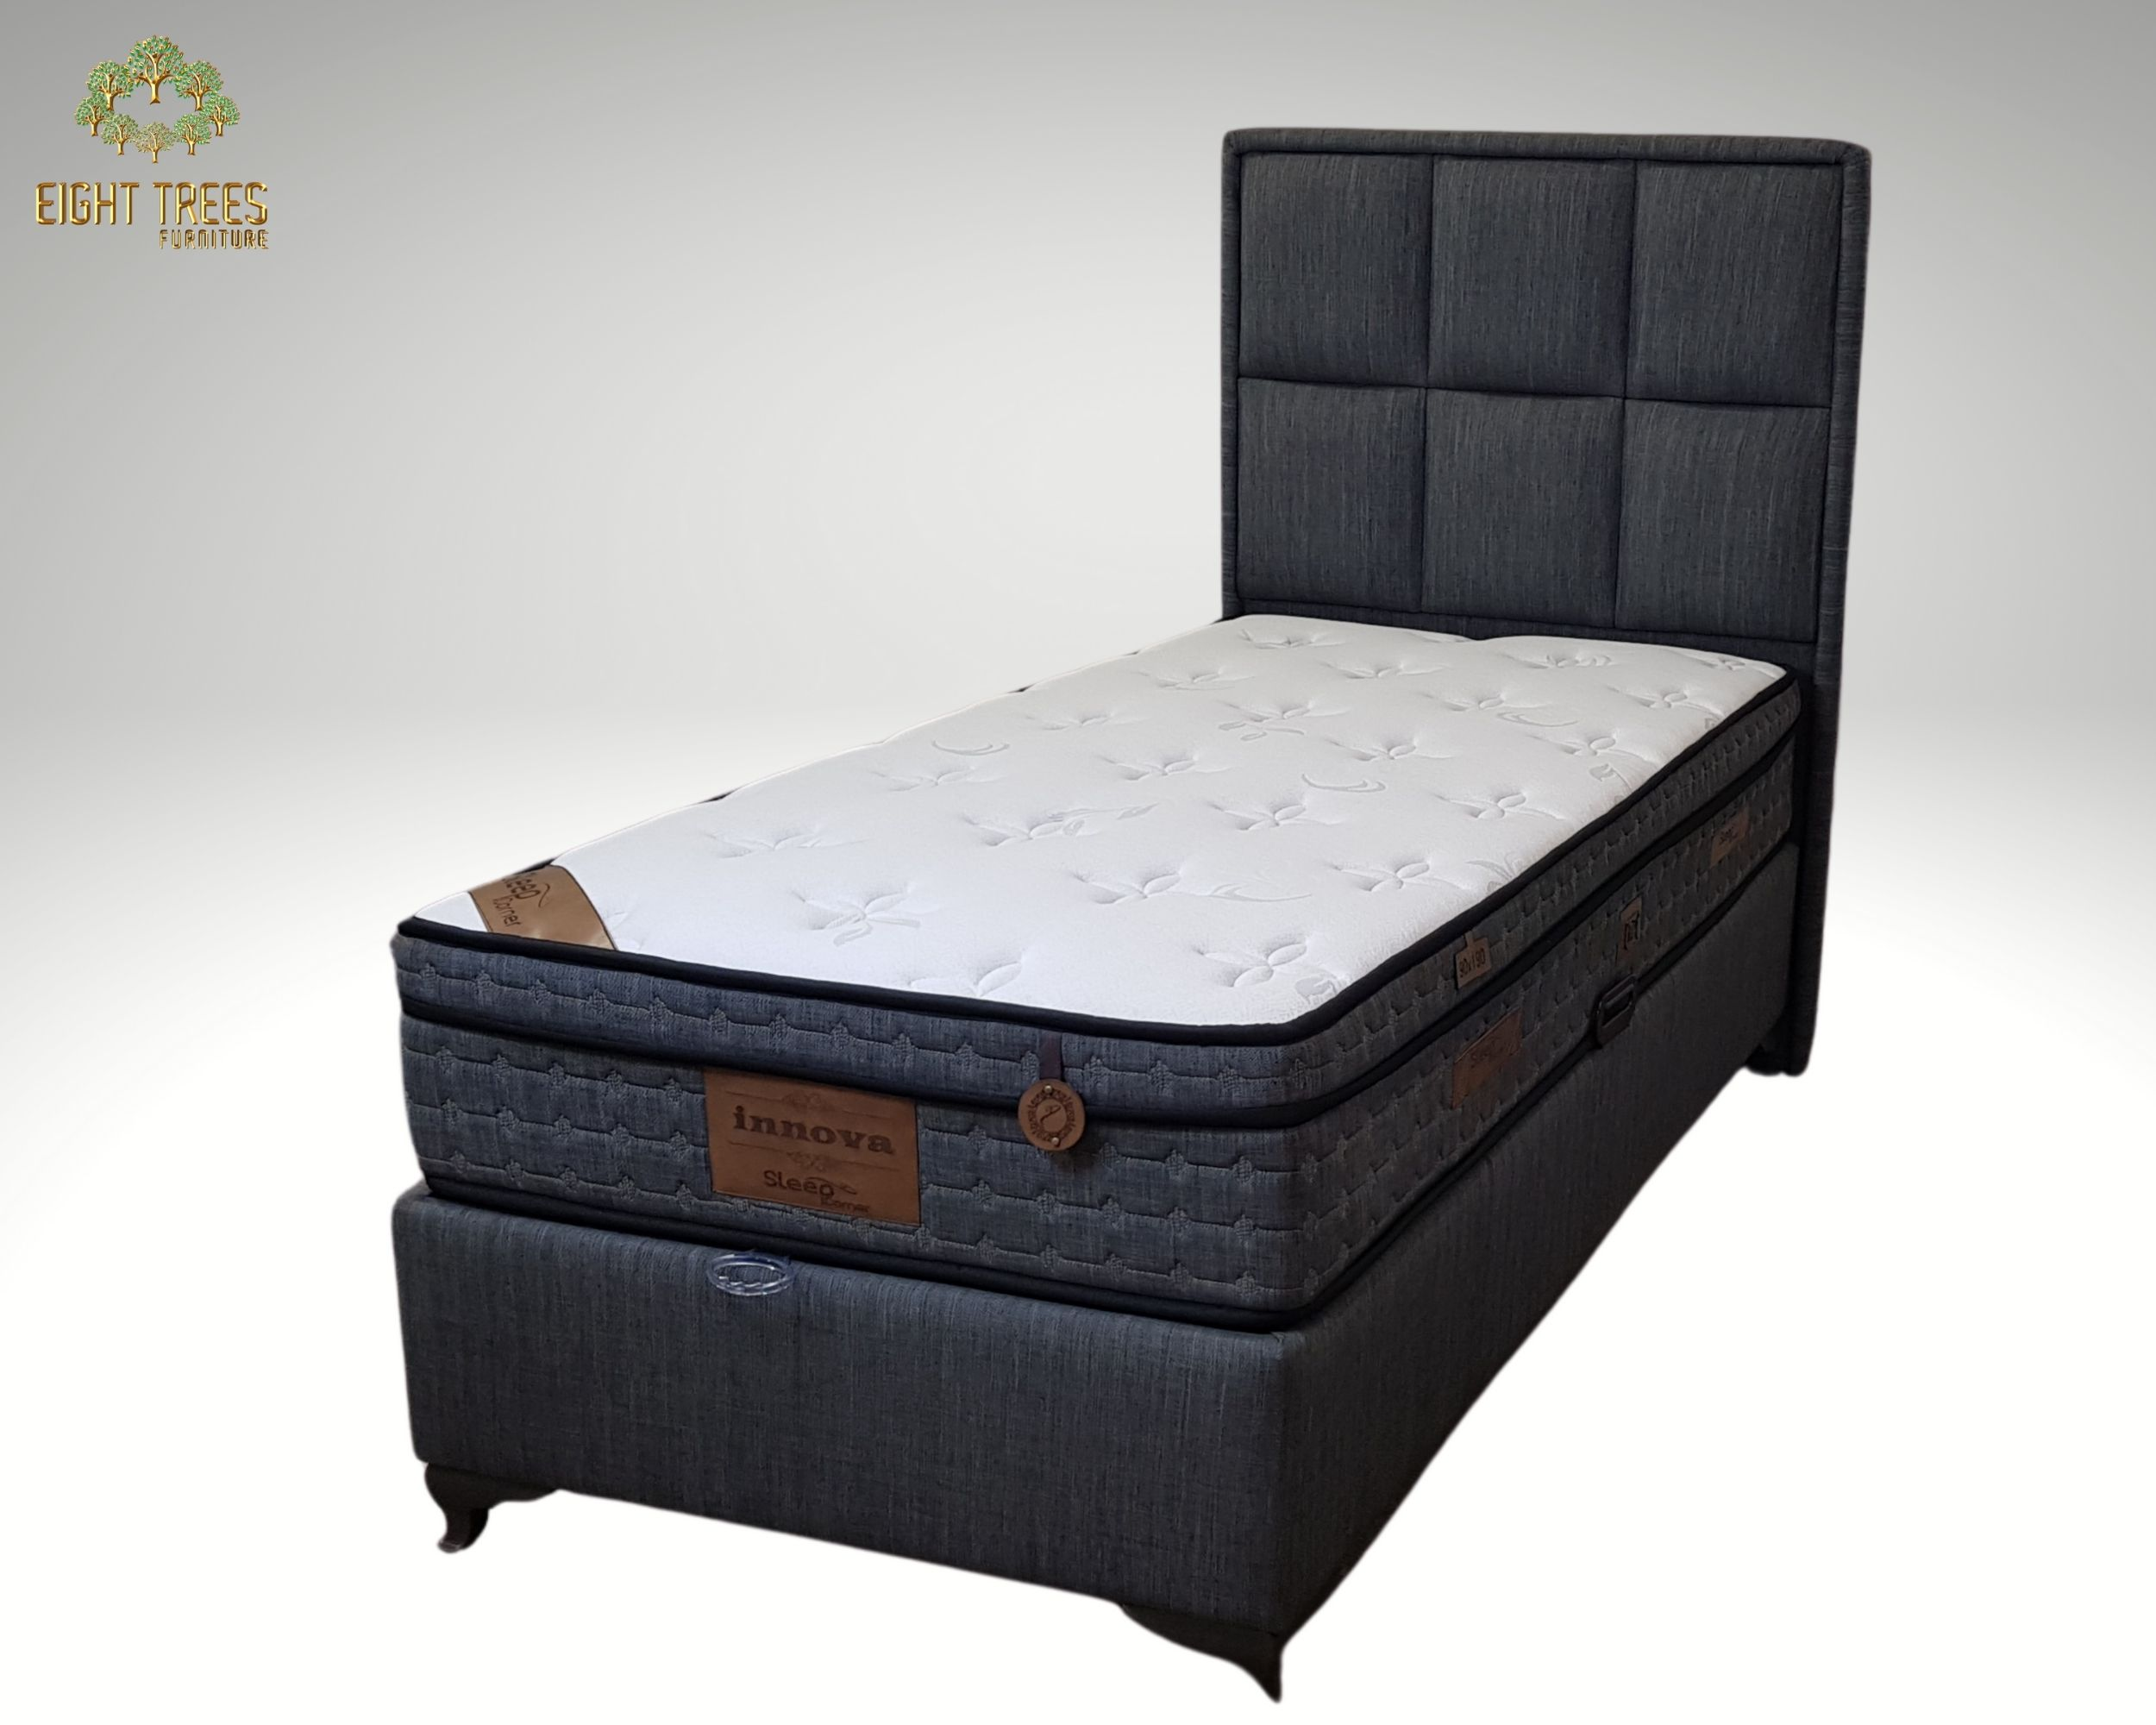 Innova Single Bed Set